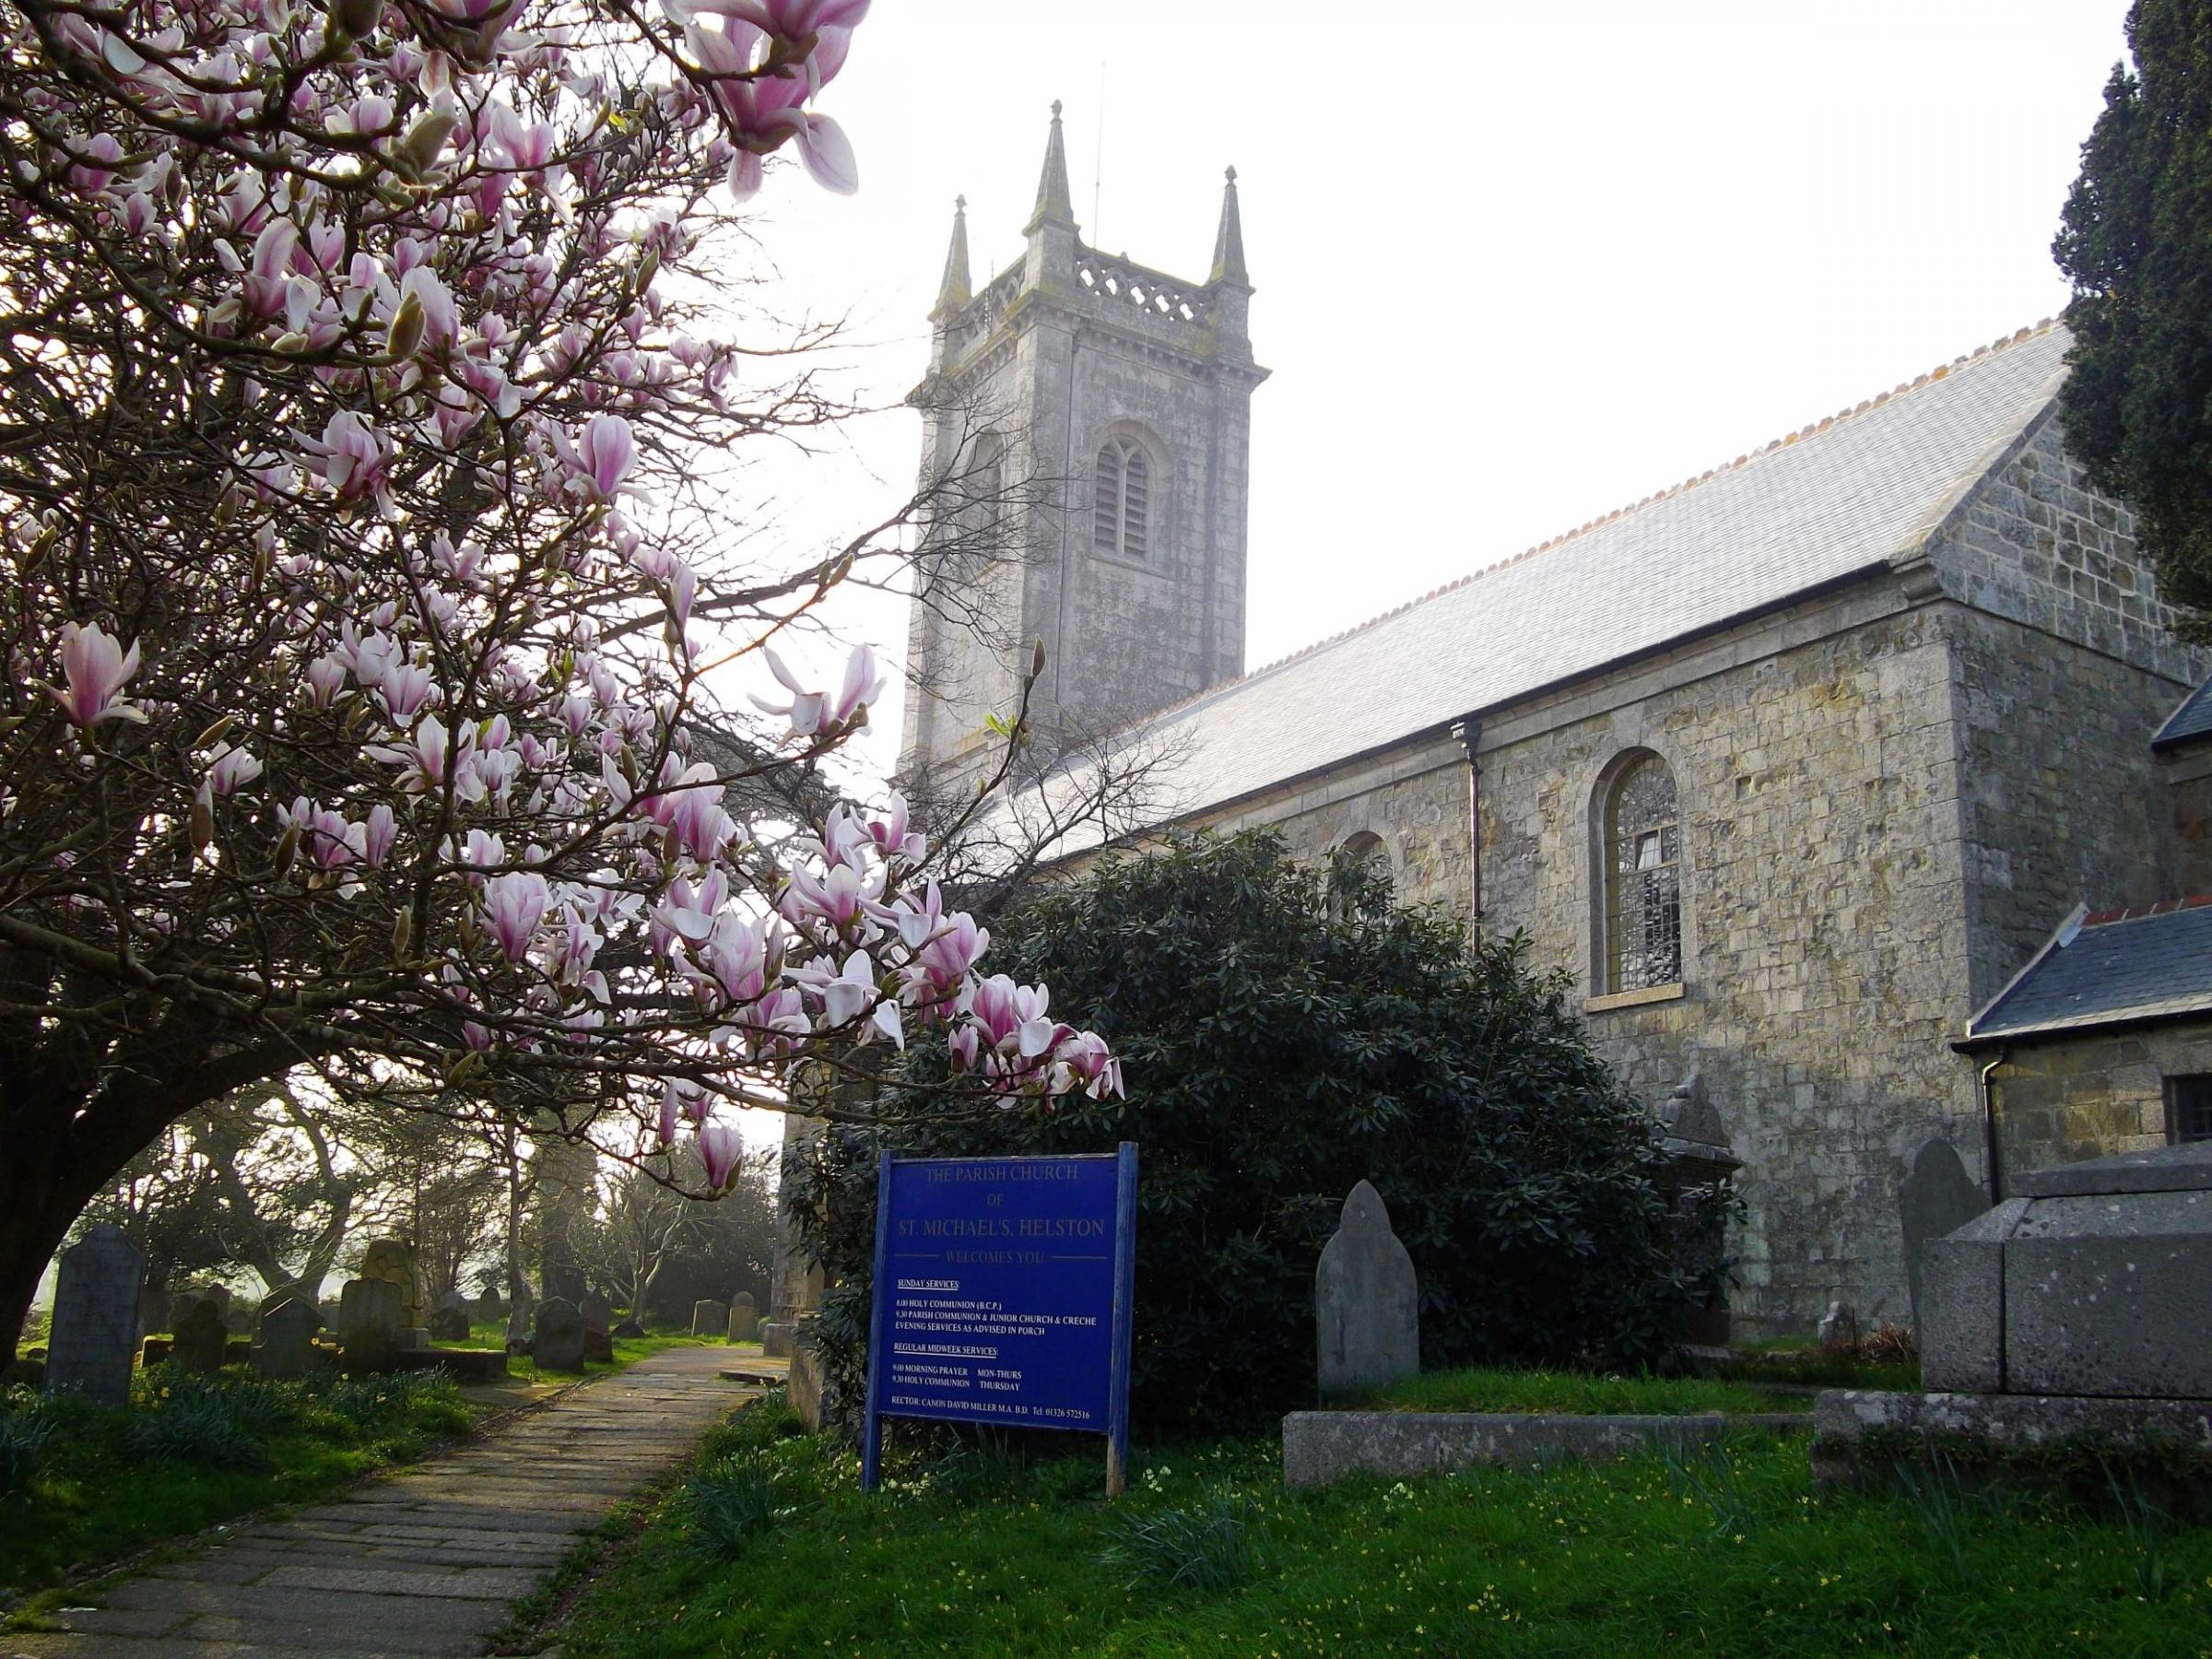 A fundraising appeal has been set up in aid of St Michael's Church in Helston